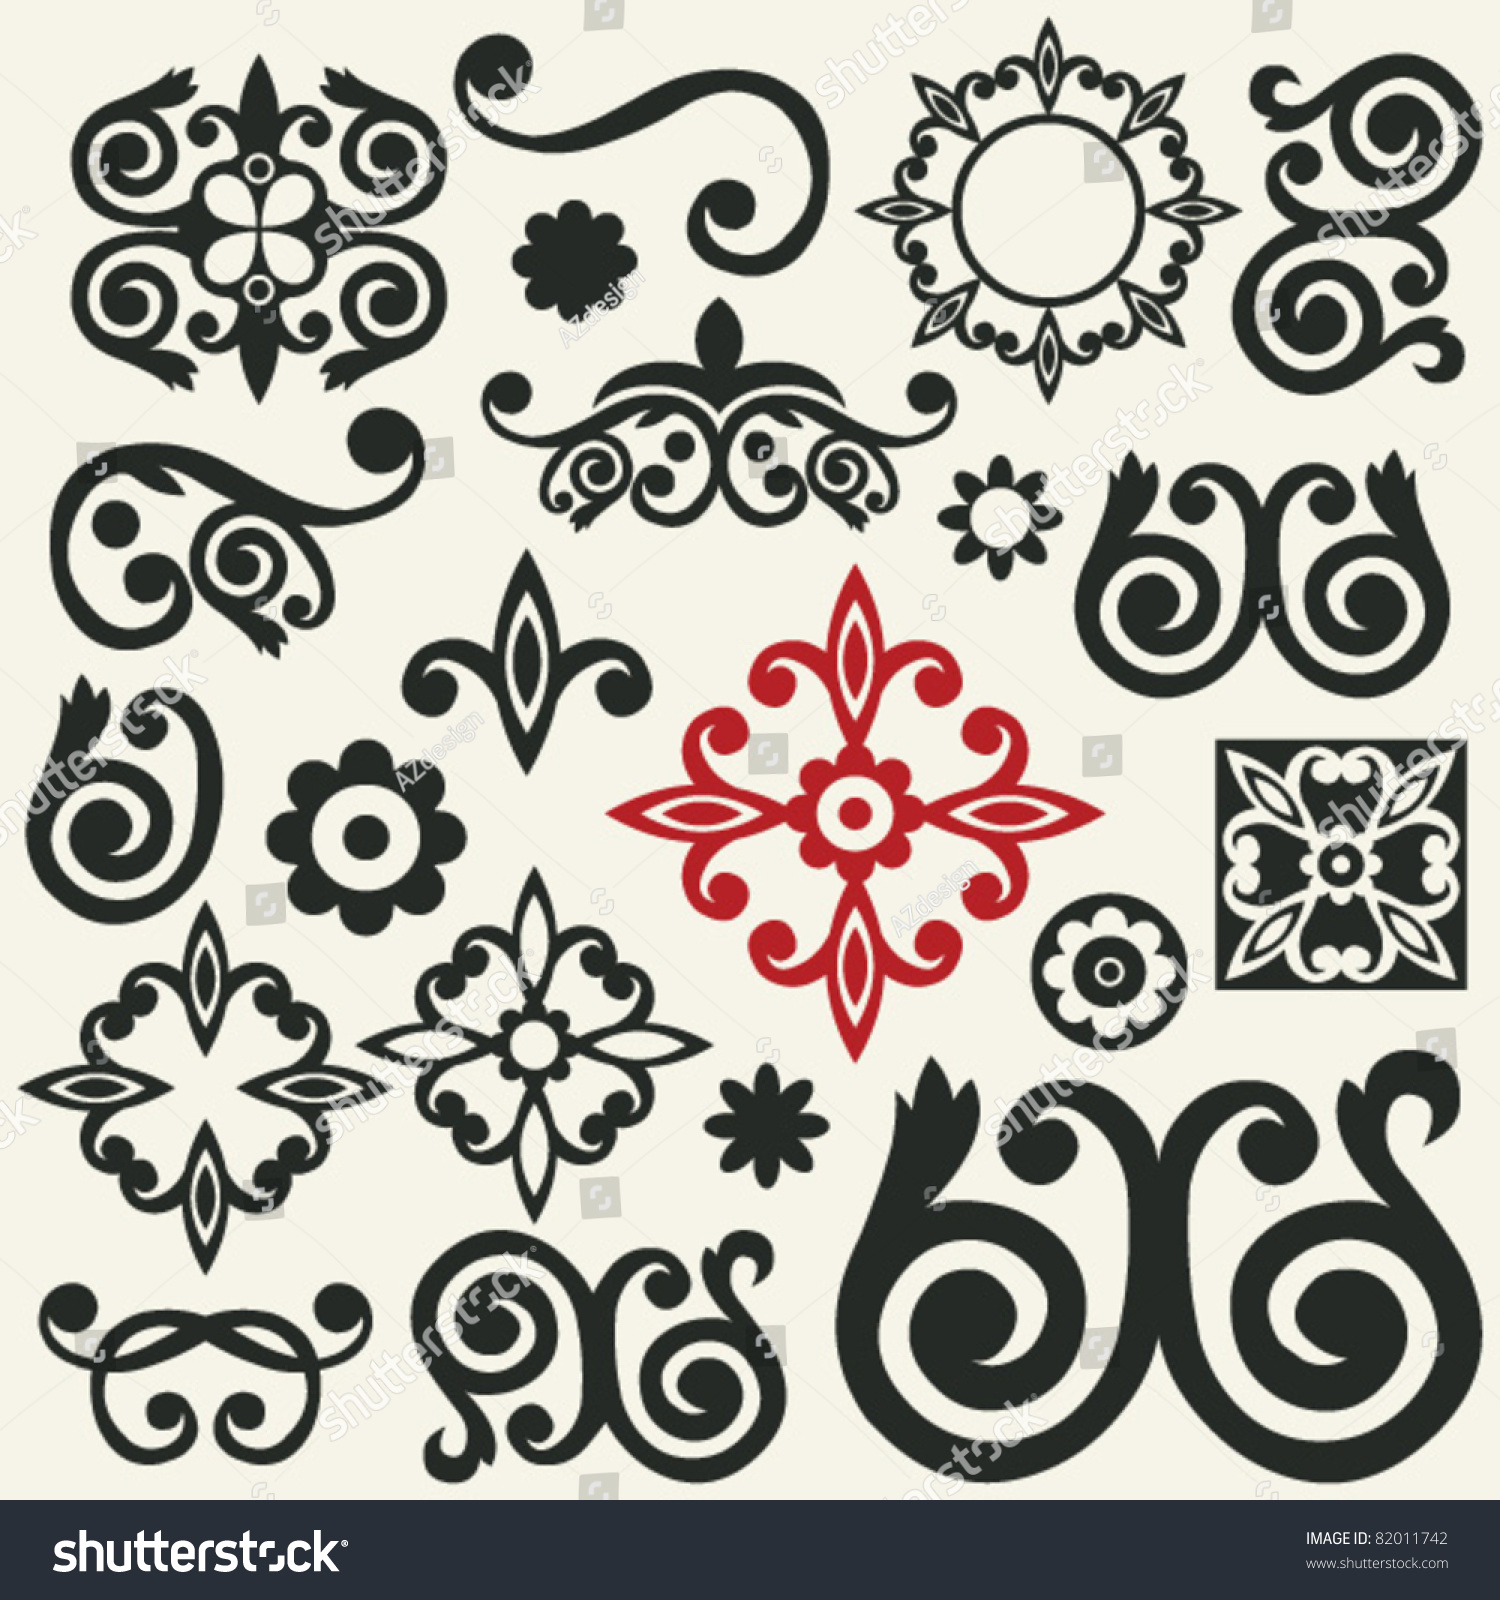 Baroque ornaments abstract floral design elements stock for Baroque design elements